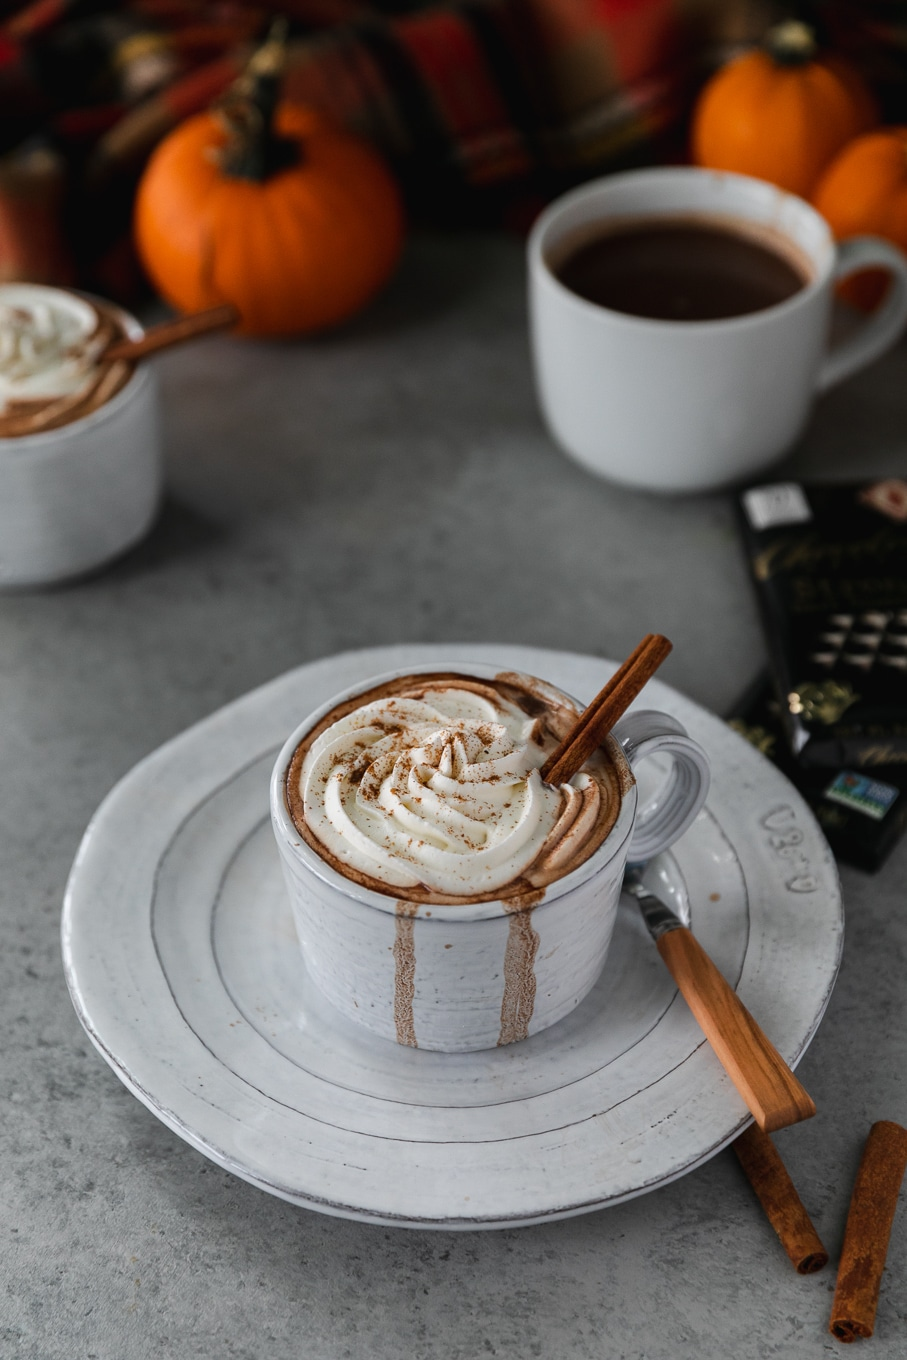 Shot of a white mug on a white plate filled with hot chocolate, topped with whipped cream and a cinnamon stick, with mini pumpkins in the background